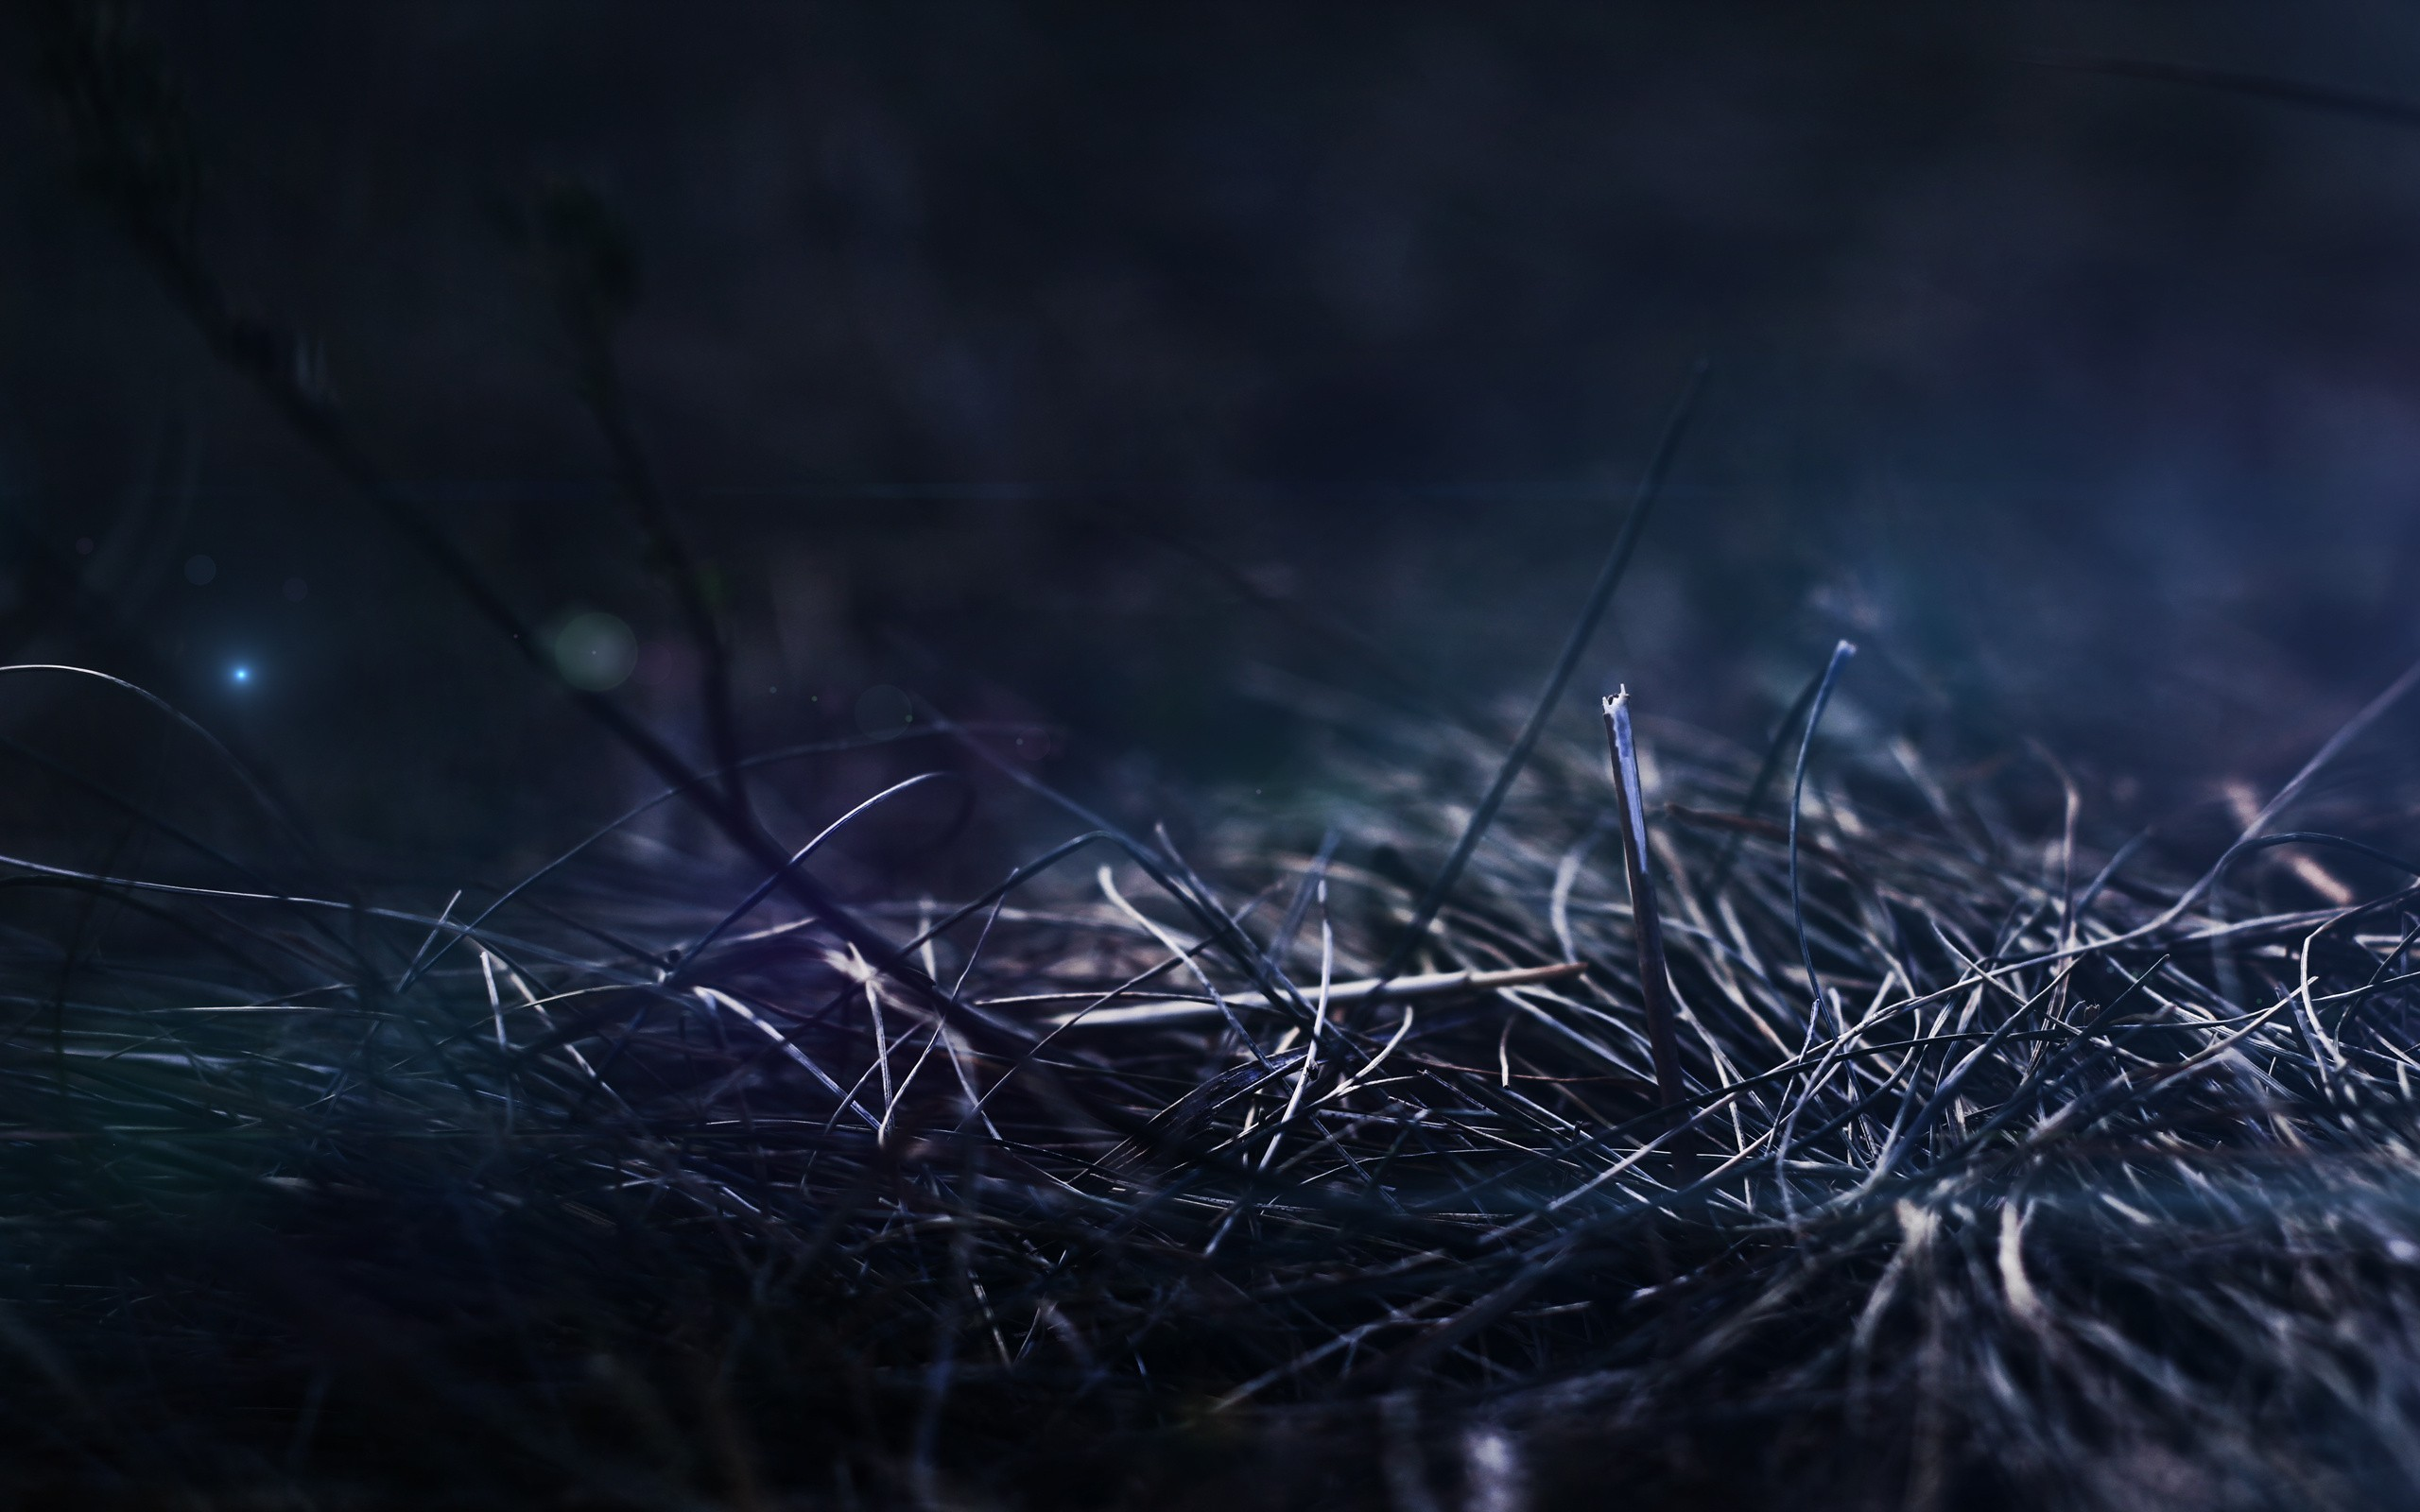 Car 5760x1080 Wallpaper Abstract Macro Depth Of Field Lens Flare Wallpapers Hd